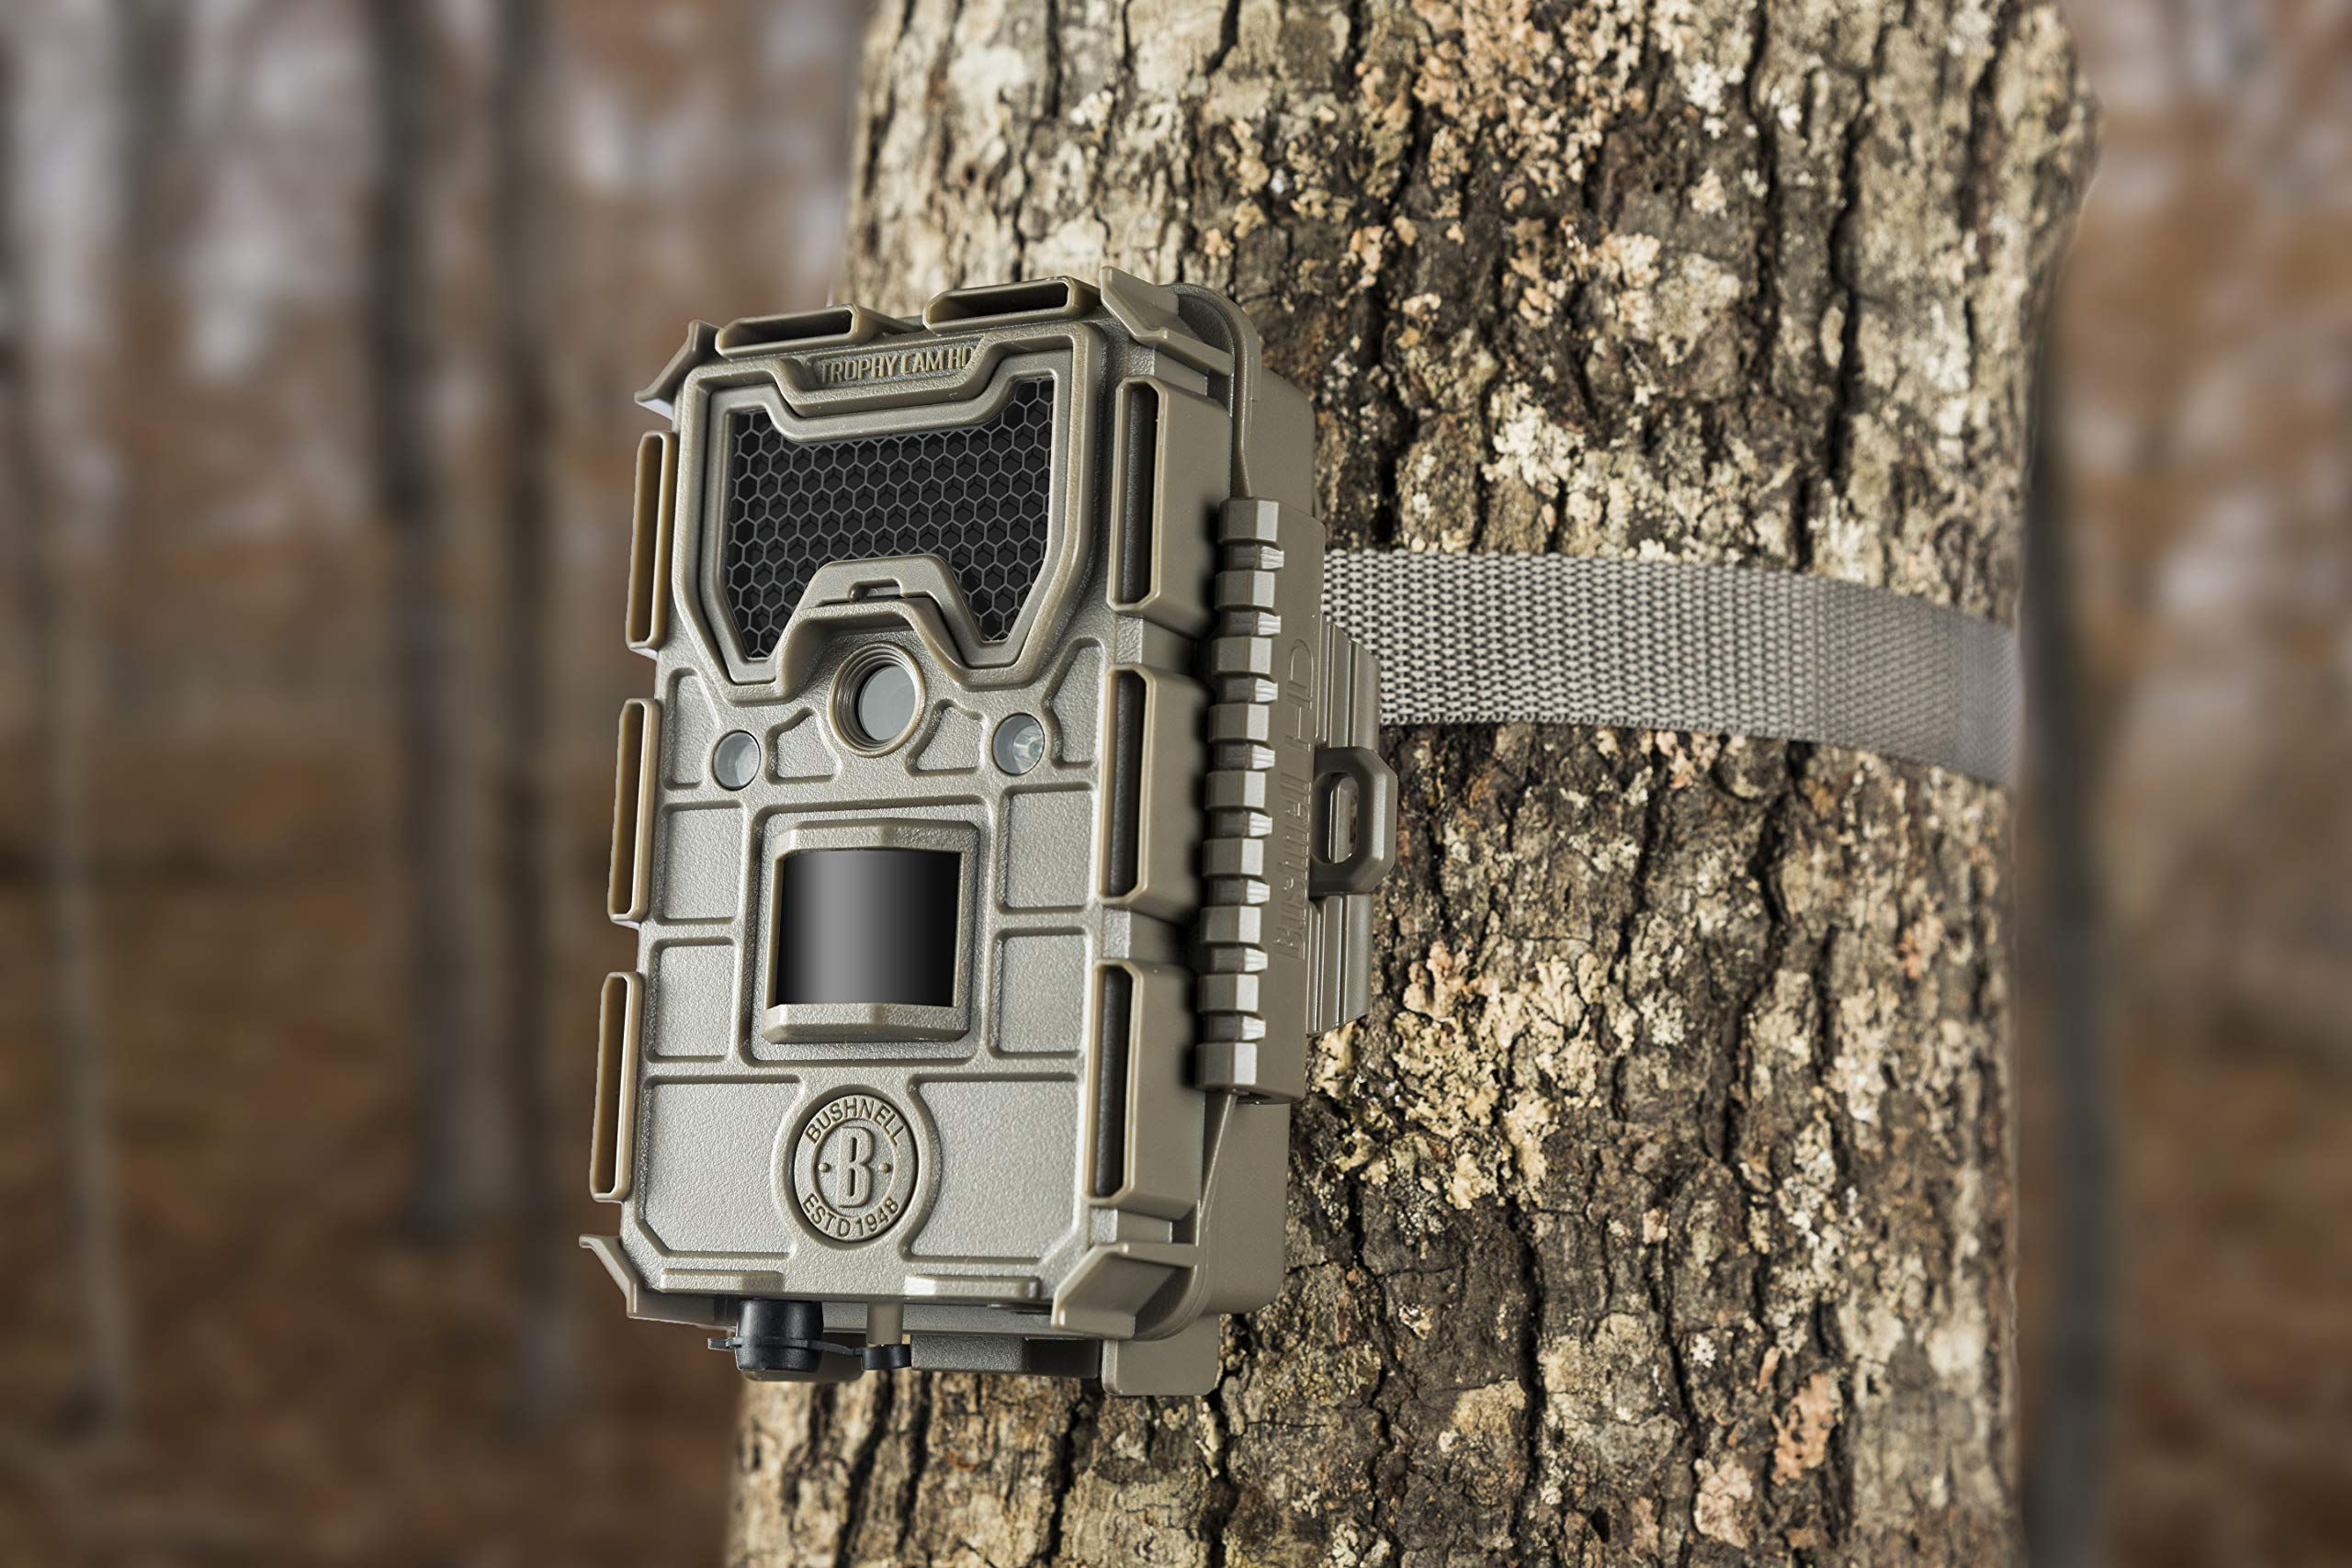 Trophy Cam HD No Glow Trail Camera, Brown, 20MP by Bushnell